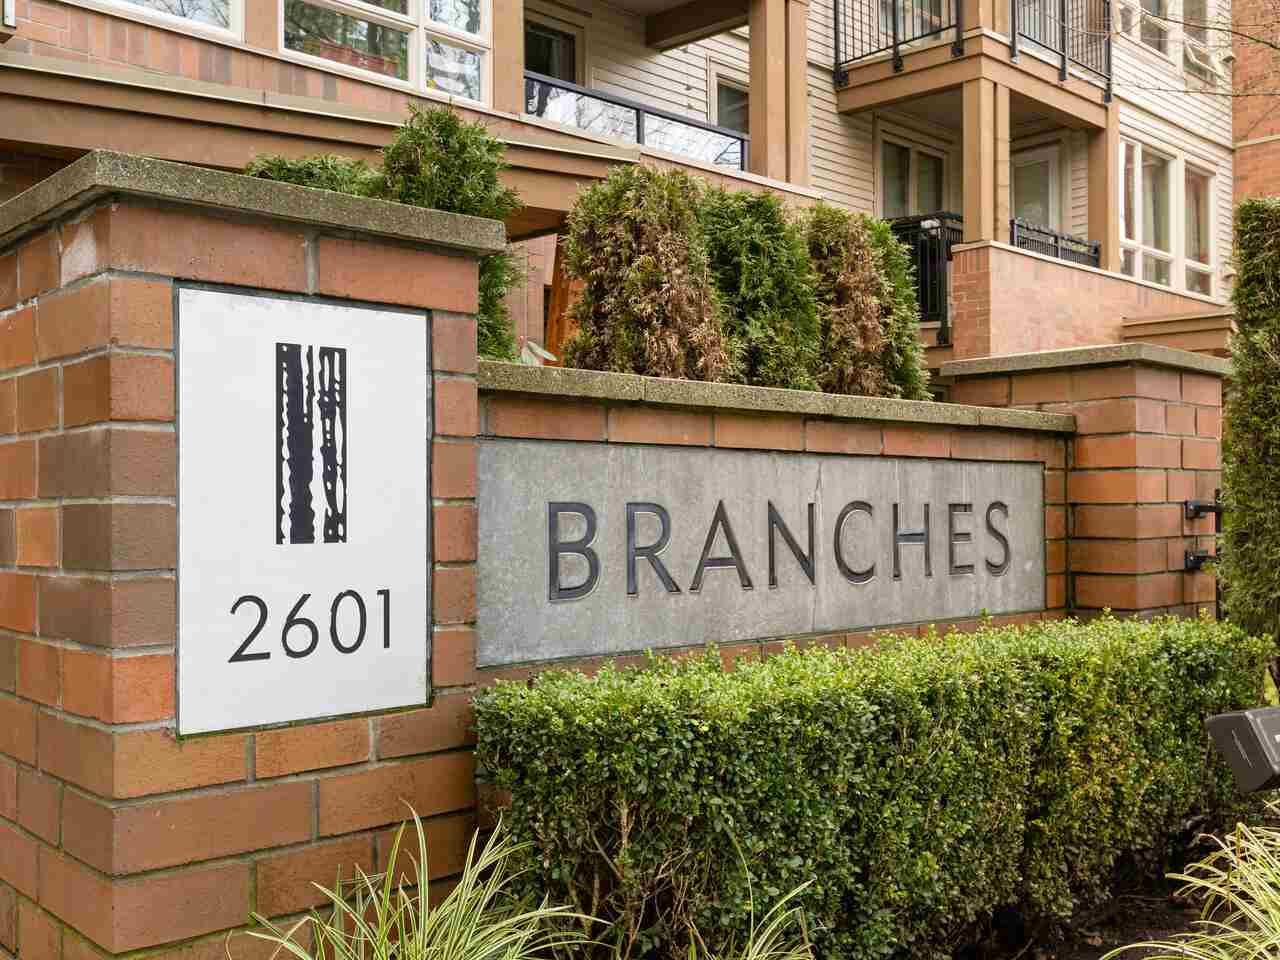 "Main Photo: 307 2601 WHITELEY Court in North Vancouver: Lynn Valley Condo for sale in ""BRANCHES"" : MLS®# R2542449"